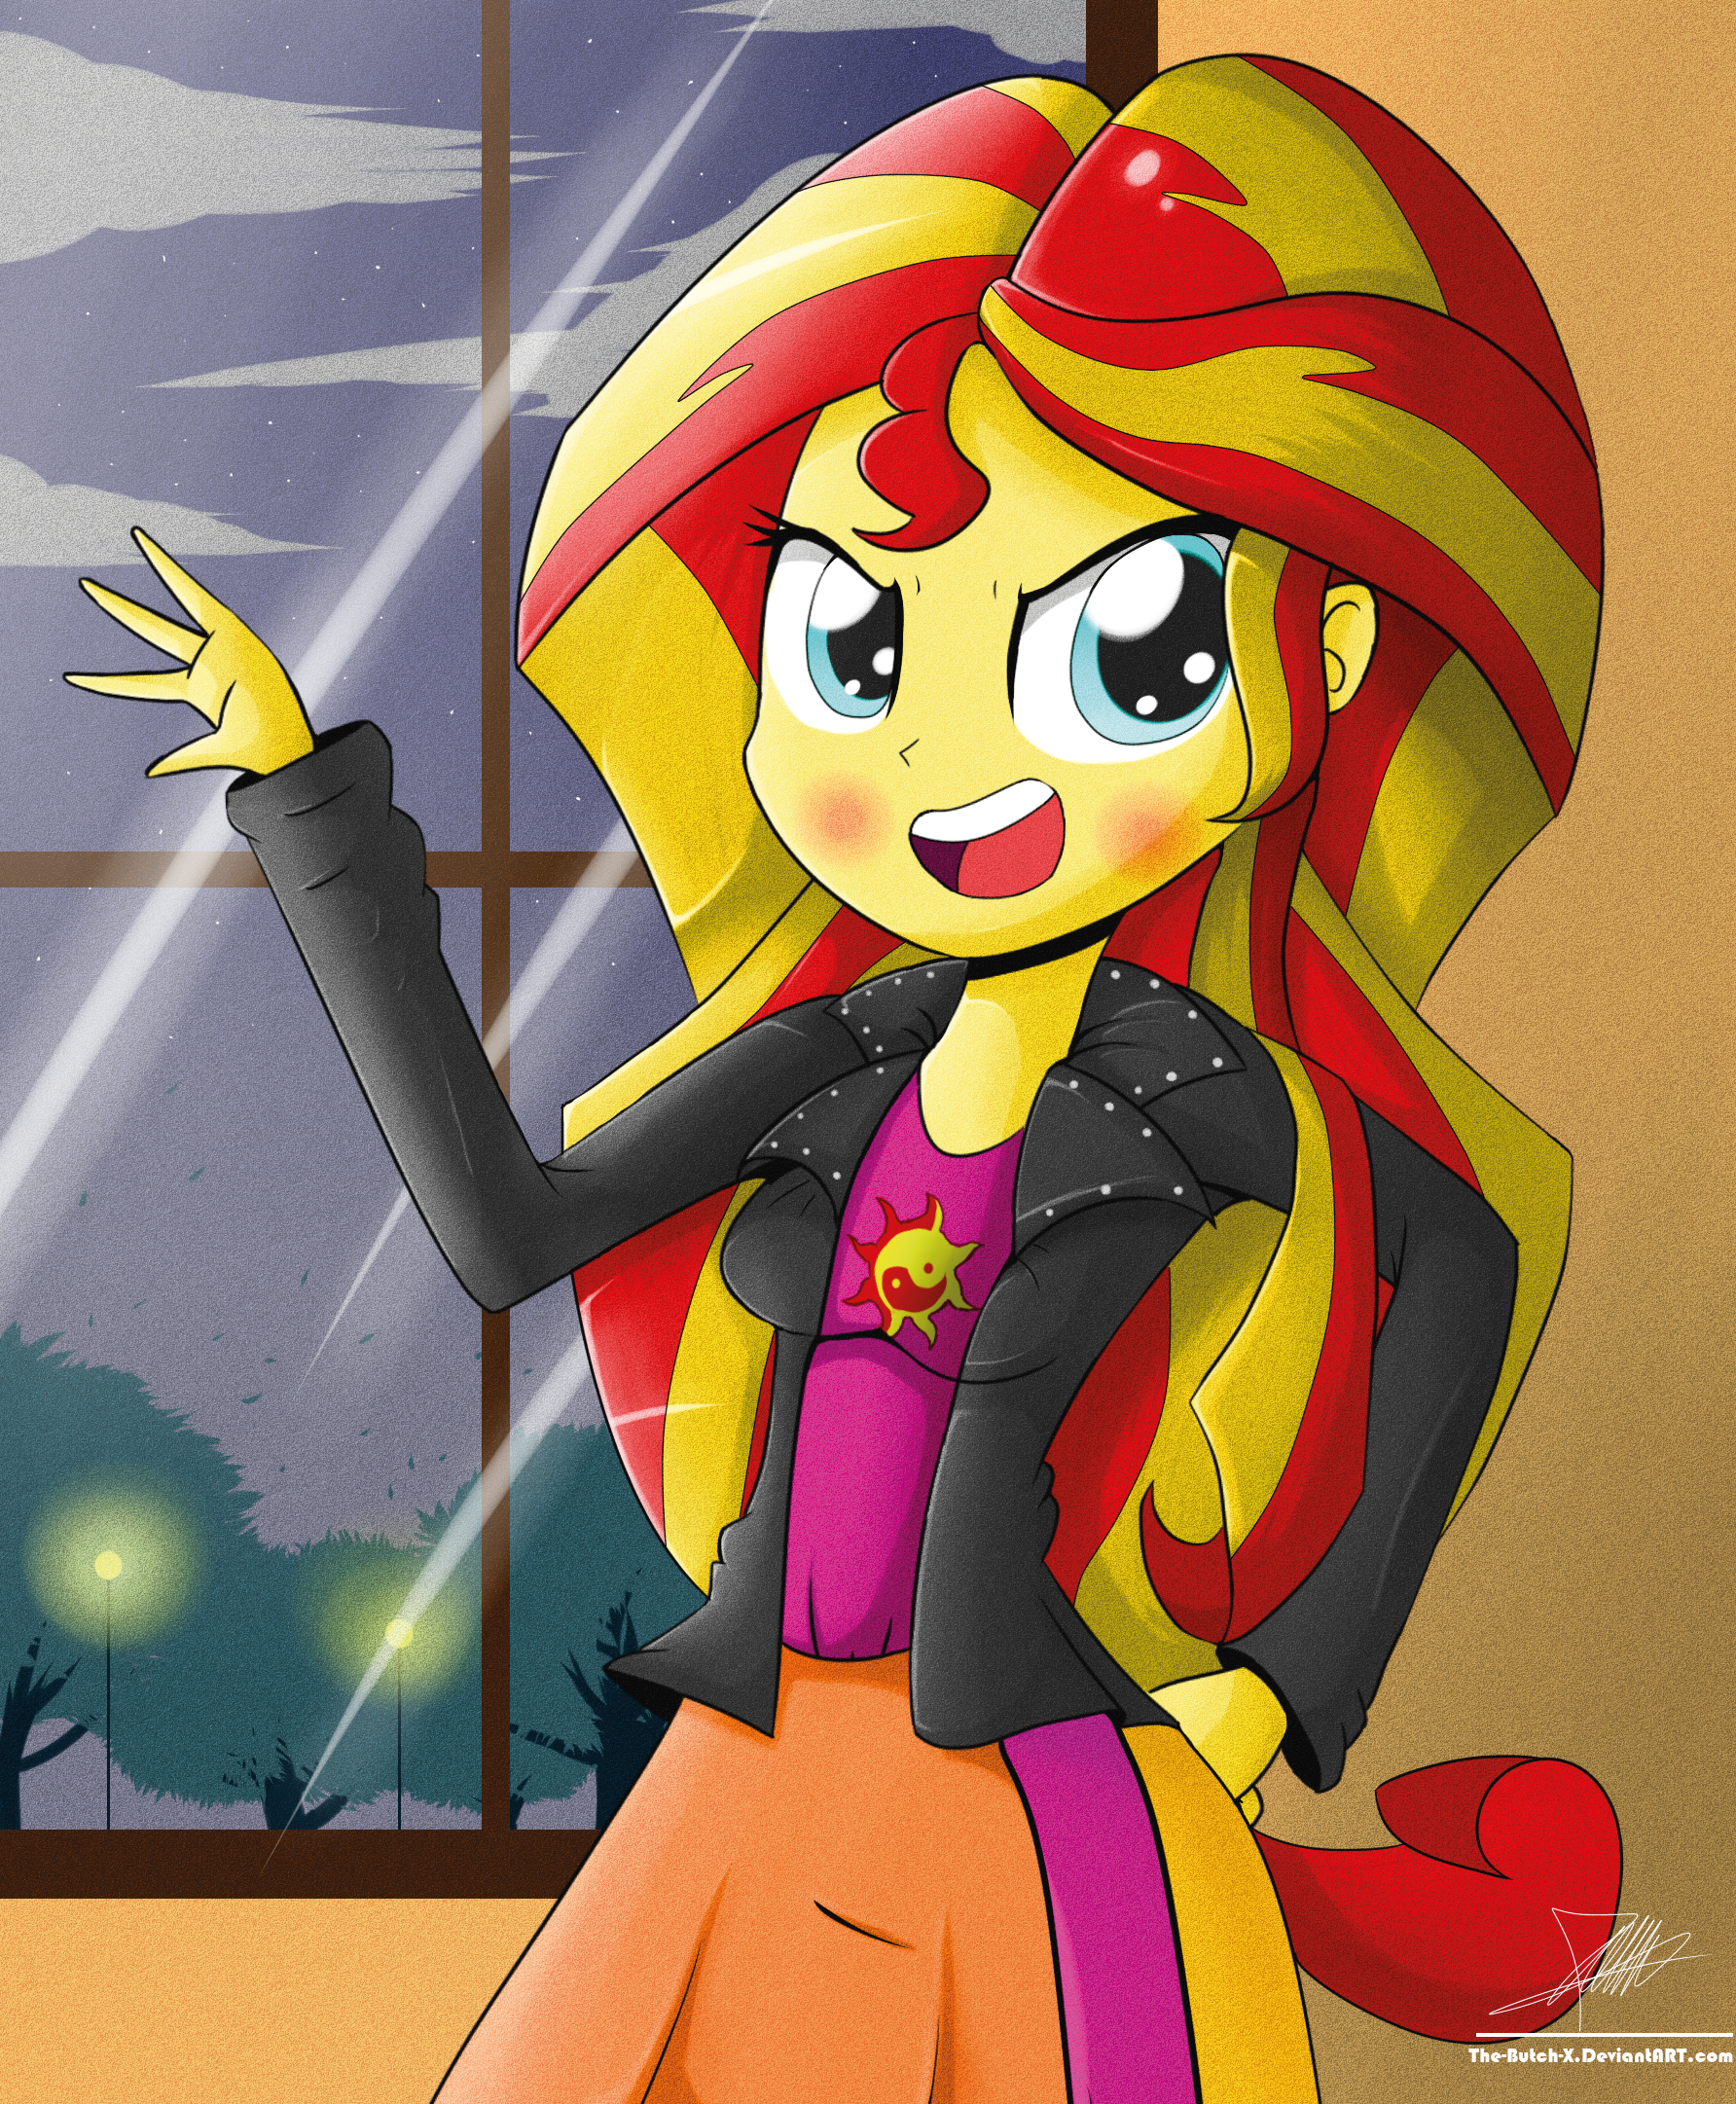 [My Little Pony] Student 6 Human by Banquo0 on DeviantArt